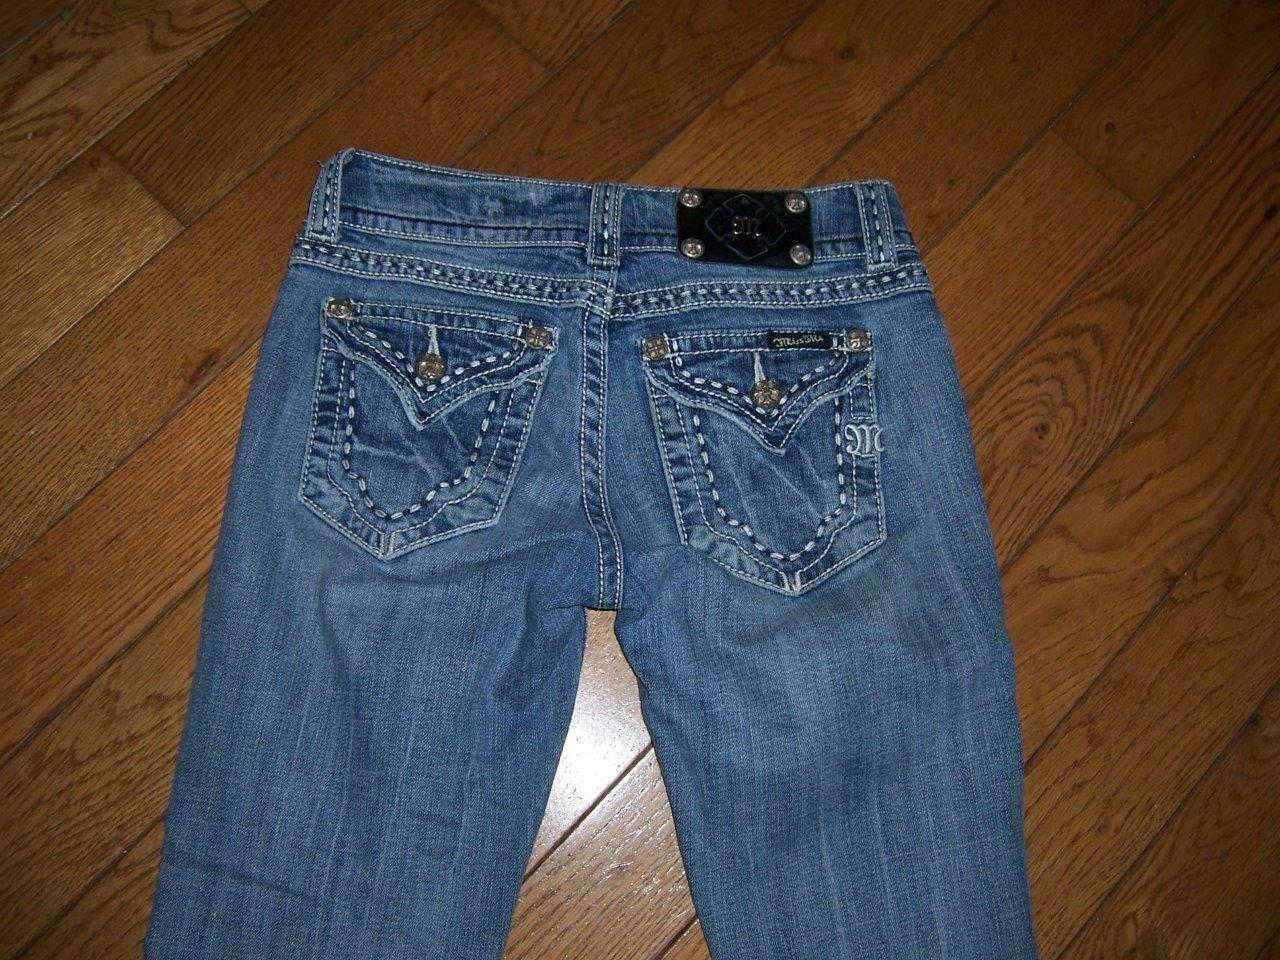 MISS ME BOOT JPW5067 BOOTCUT DISTRESSED JEANS SIZE 27 98% COTTON WOMEN'S